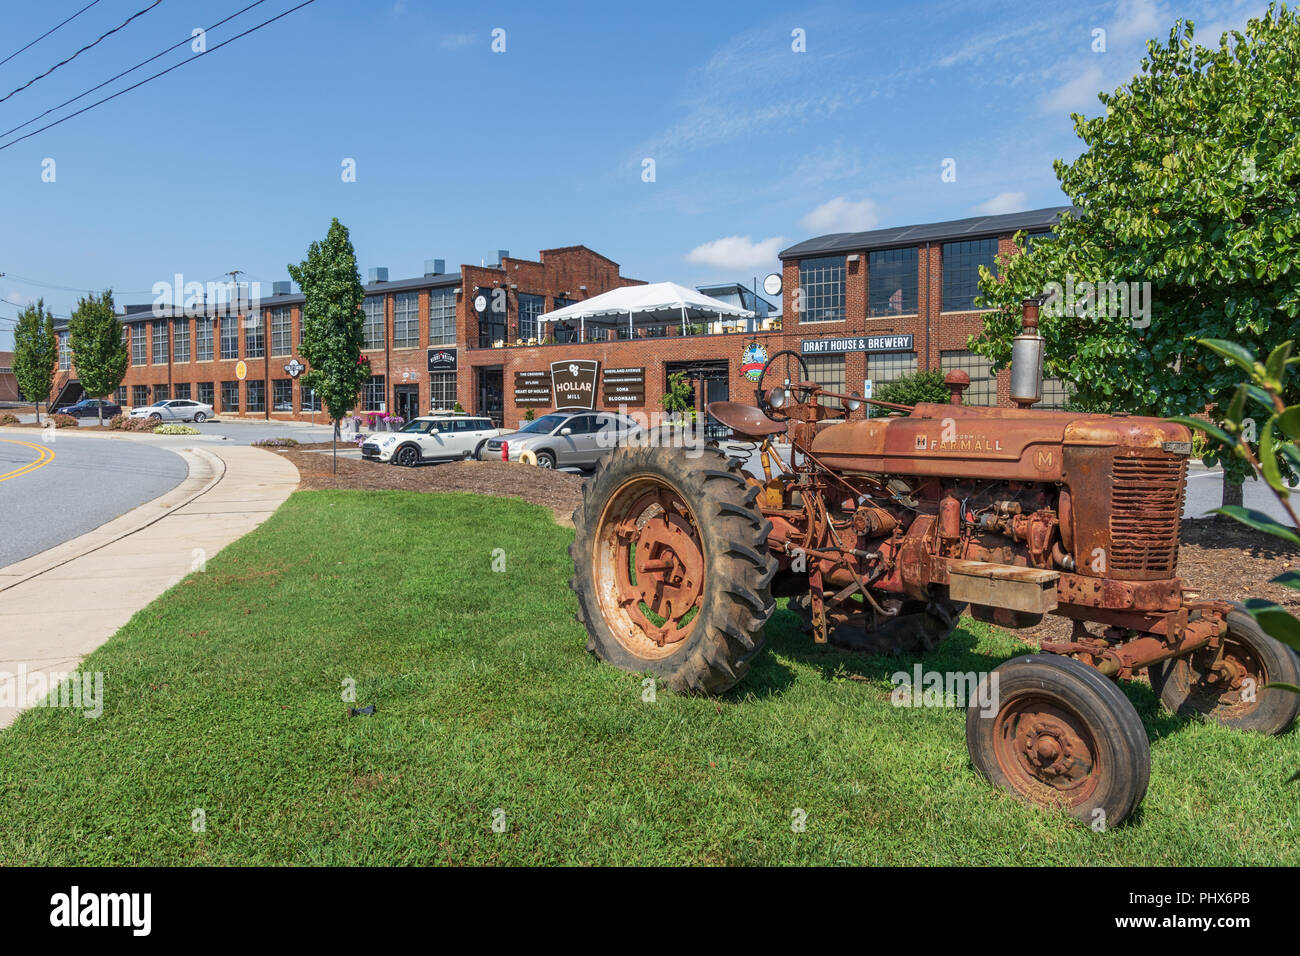 HICKORY, NORTH CAROLINA,  USA-9/1/18:  Hollar Mill, a renovated mill building, containing specialty stores and shops, with antique Farmall tractor. Stock Photo